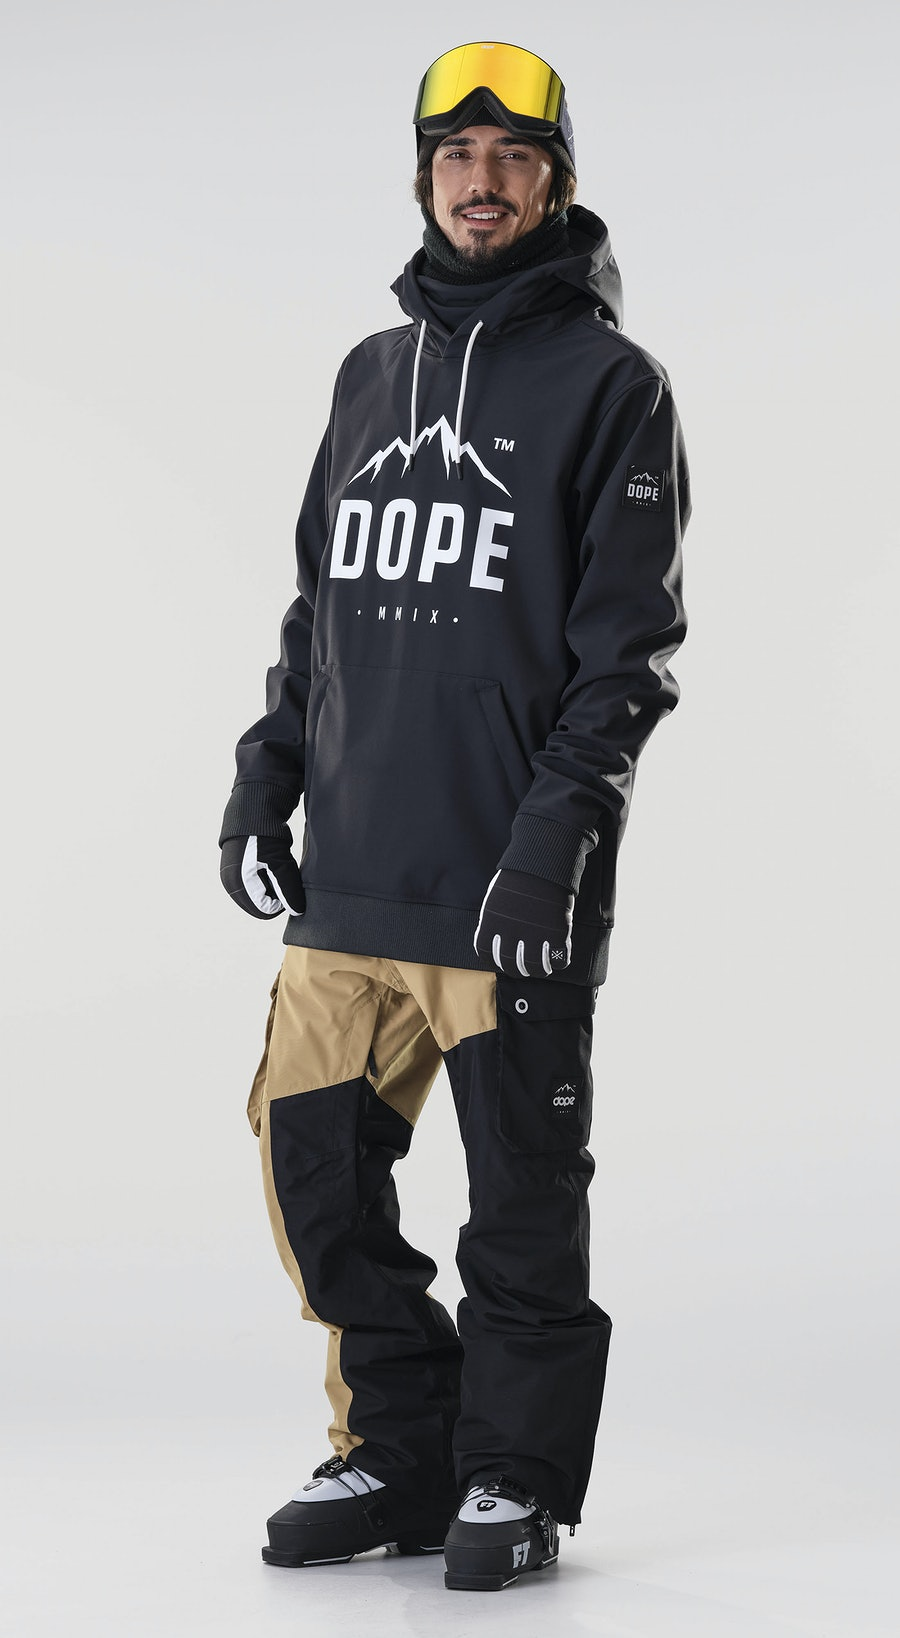 Dope Yeti Paradise Black Vêtements de Ski Multi